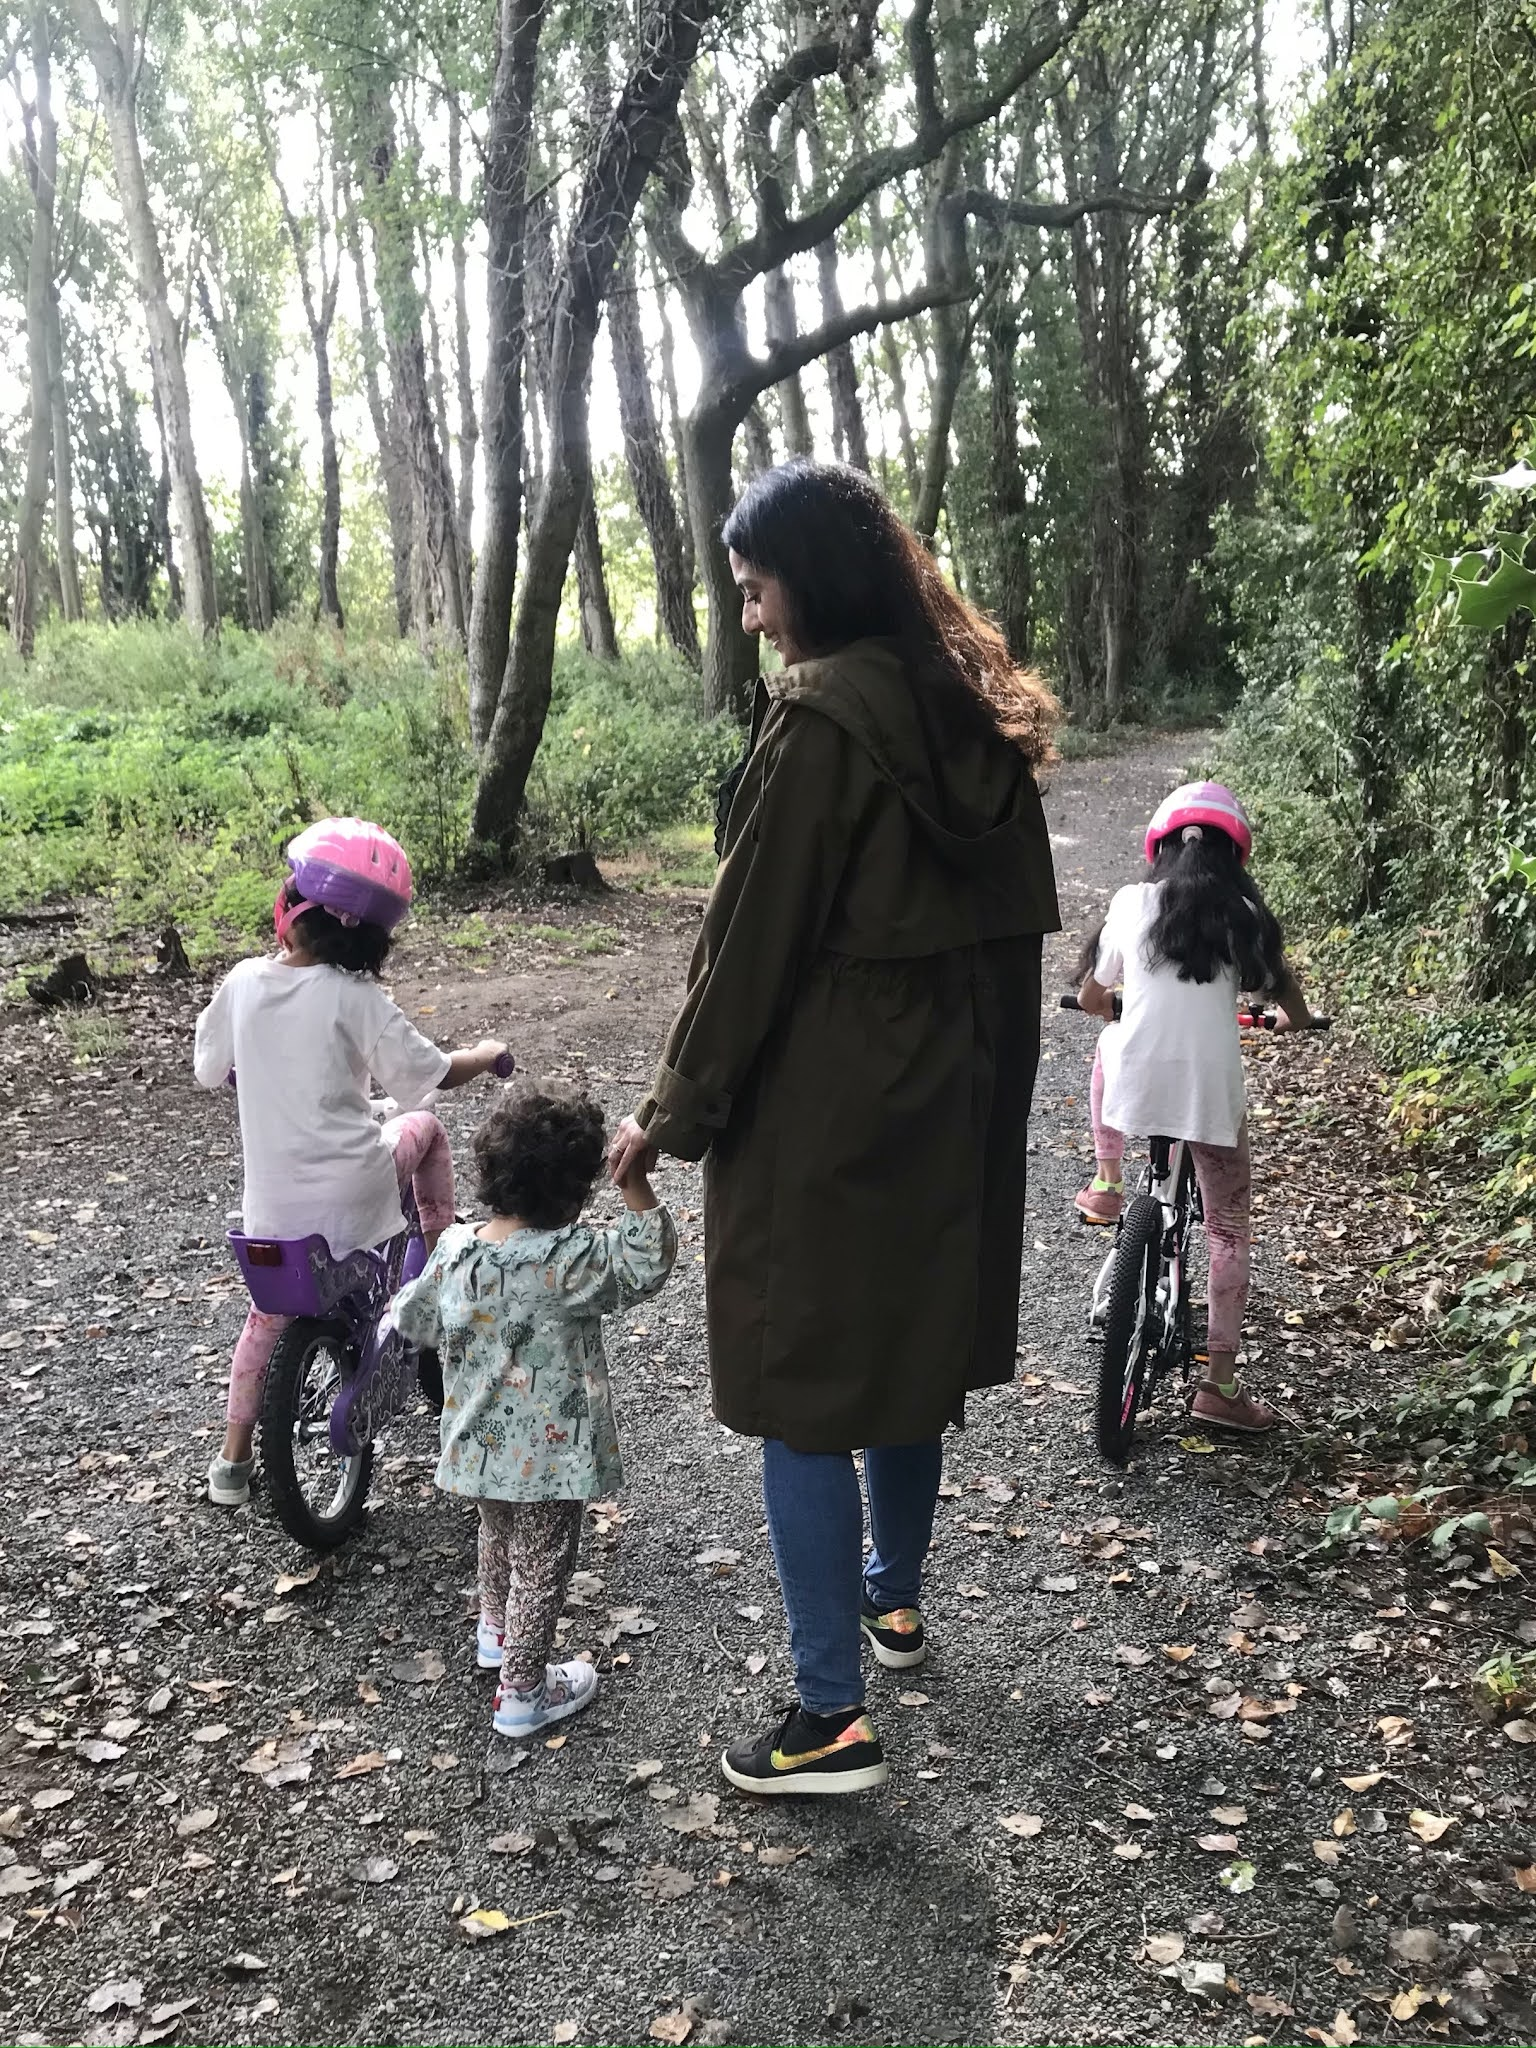 amina walking with her toddler in the woods